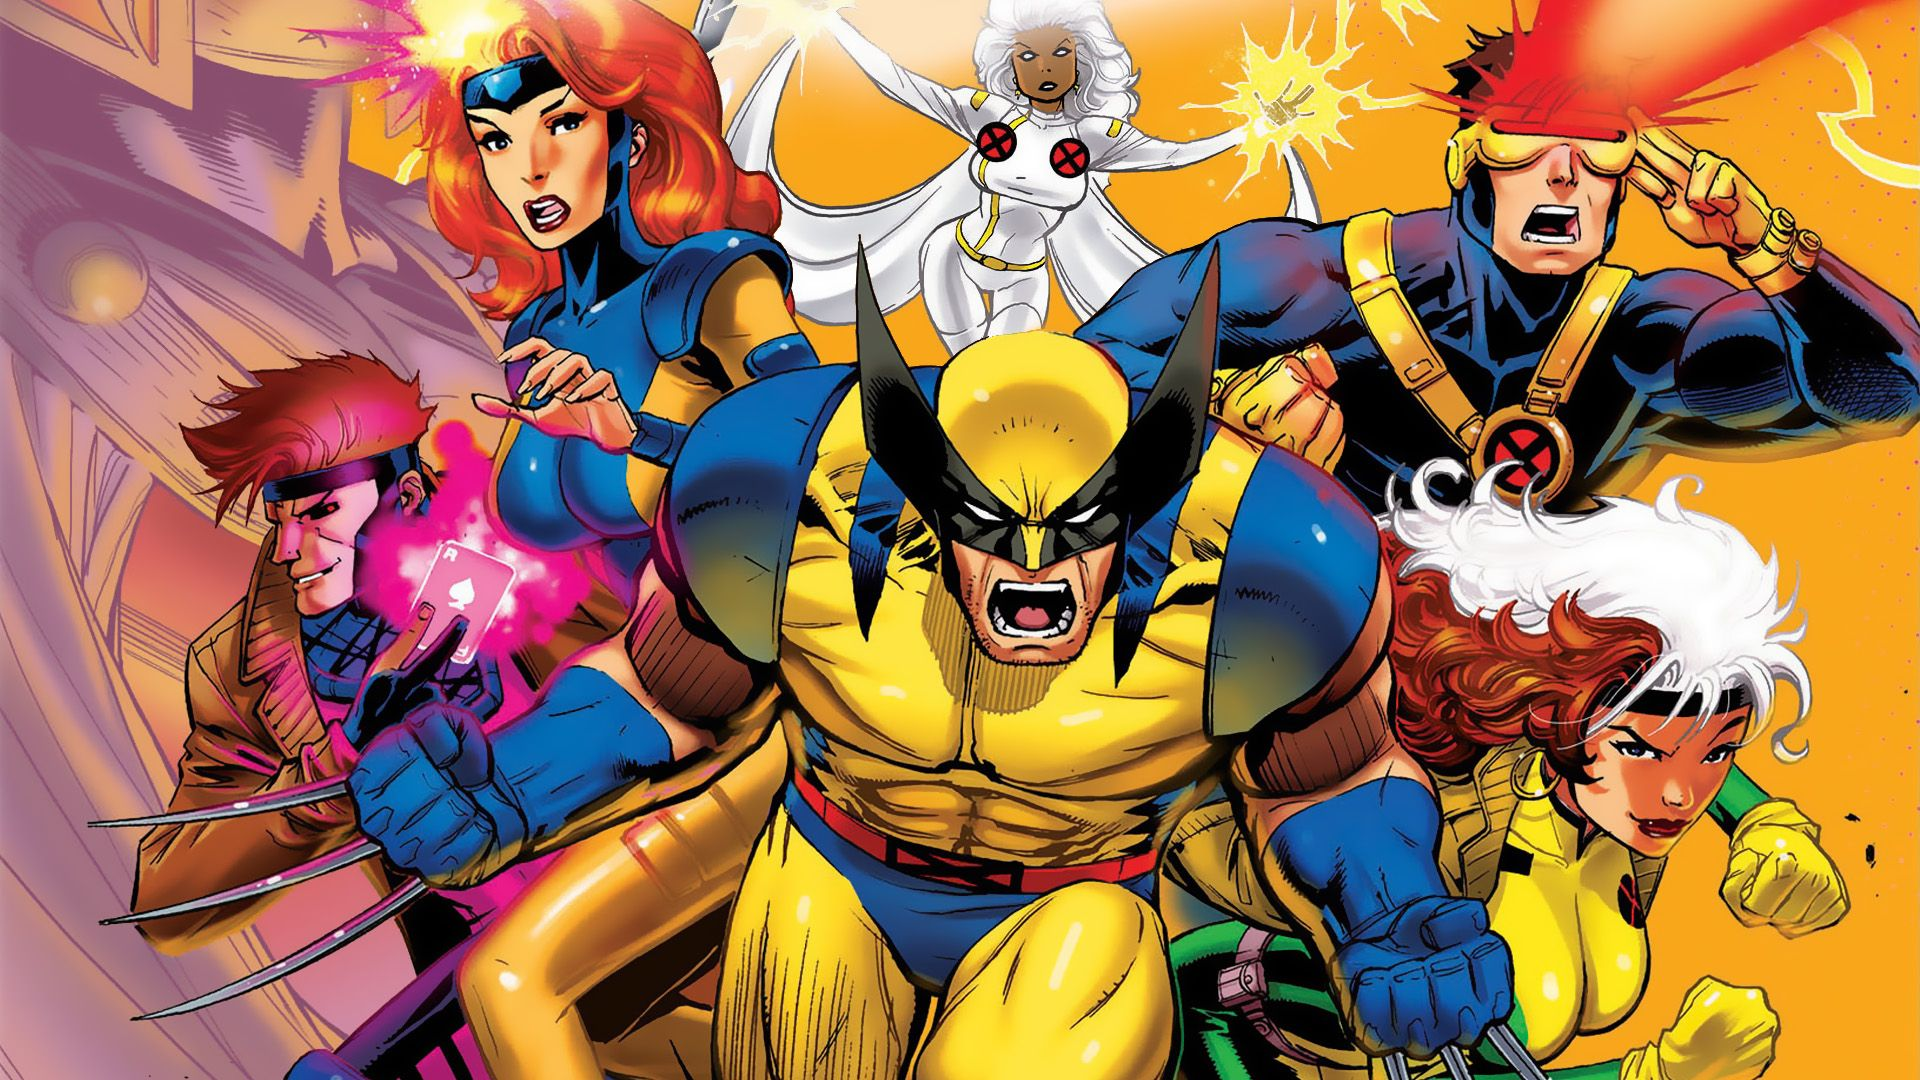 What X Men Character Are You X Men Comic Book Collection Marvel X